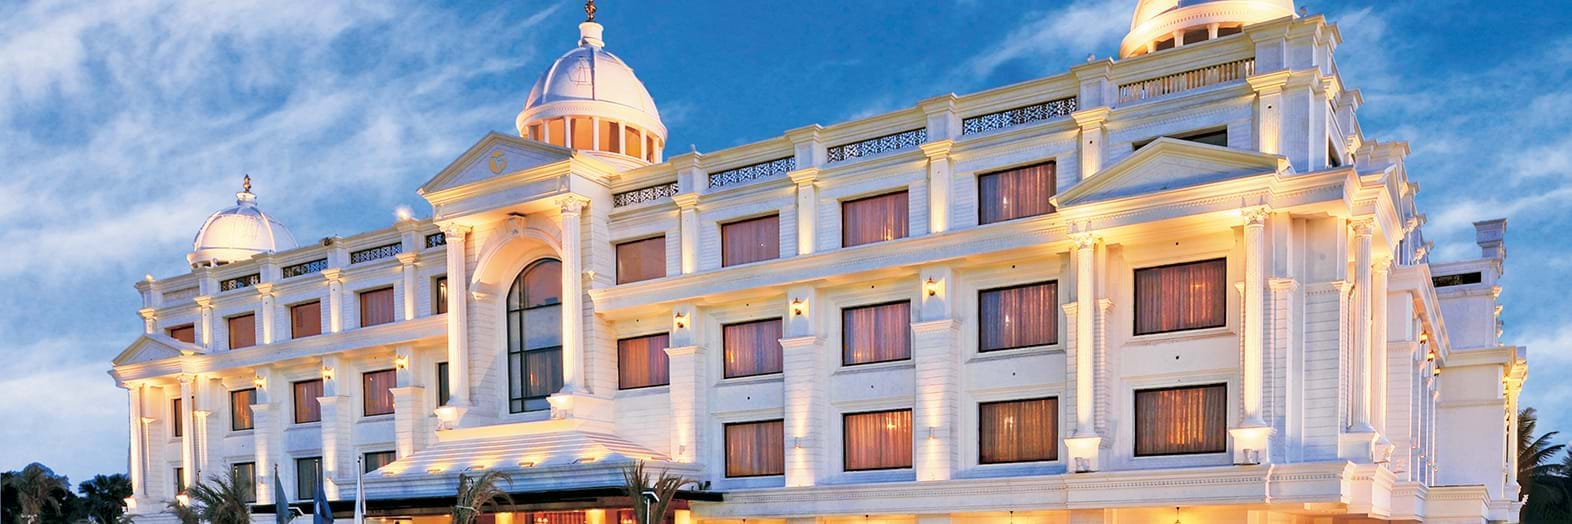 Mysore Fortune Jp Palace Hotel 5 Star Luxury Hotels Mysore